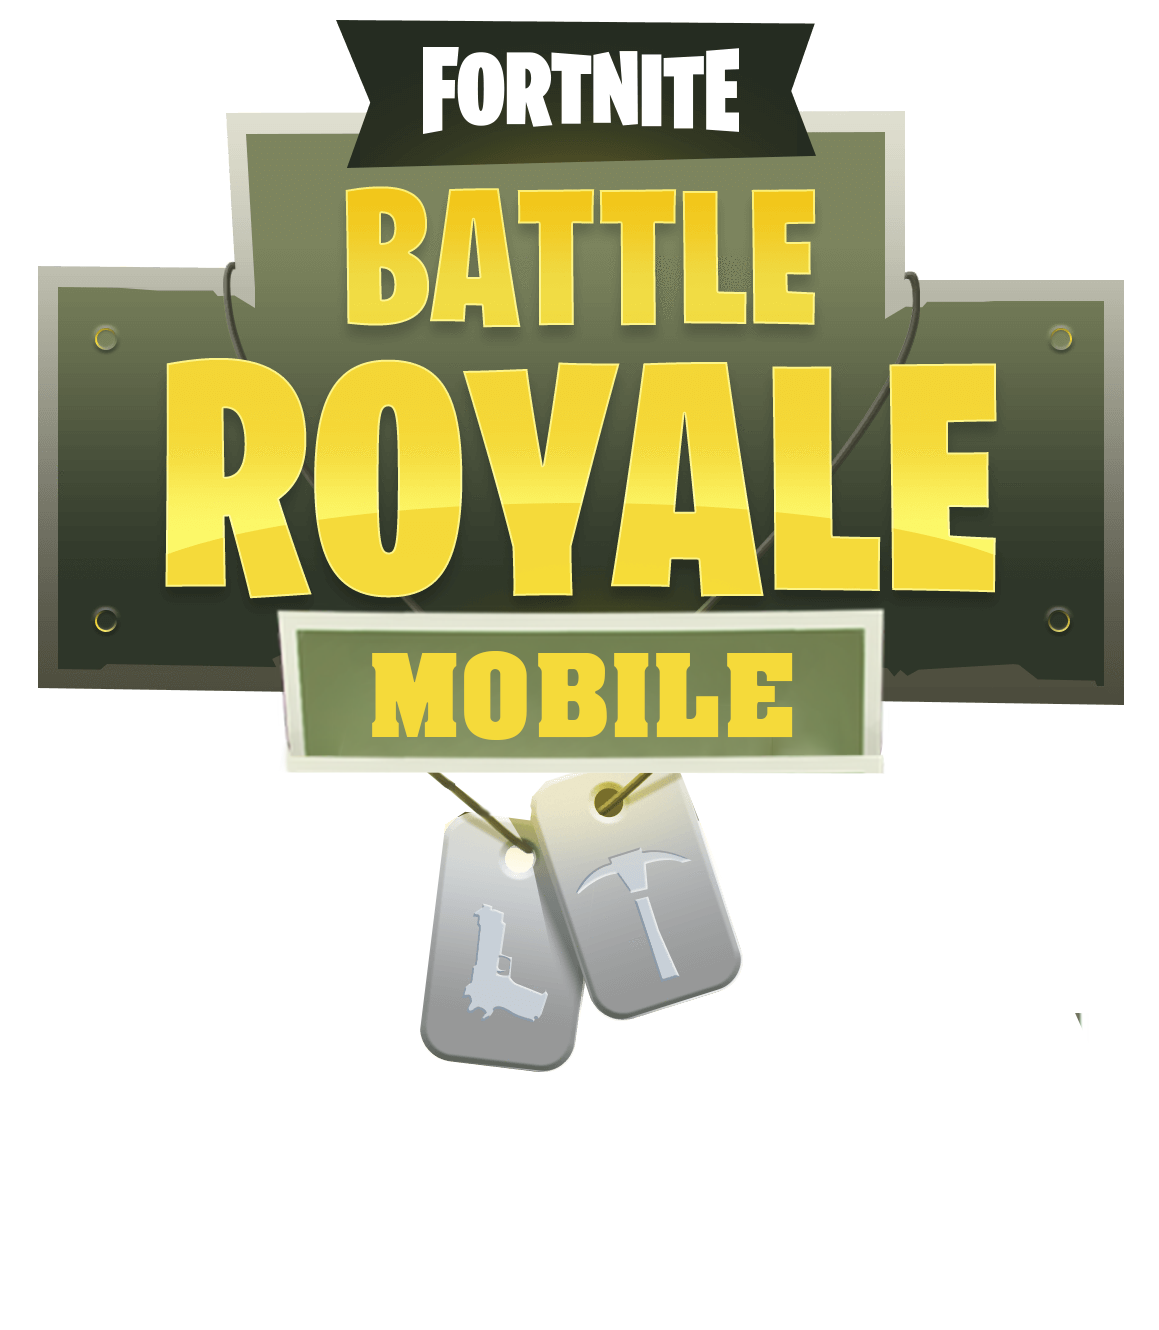 Fortnite Mobile Logo Png Image Mobile Logo Logo Tutorial Logo Templates Psd